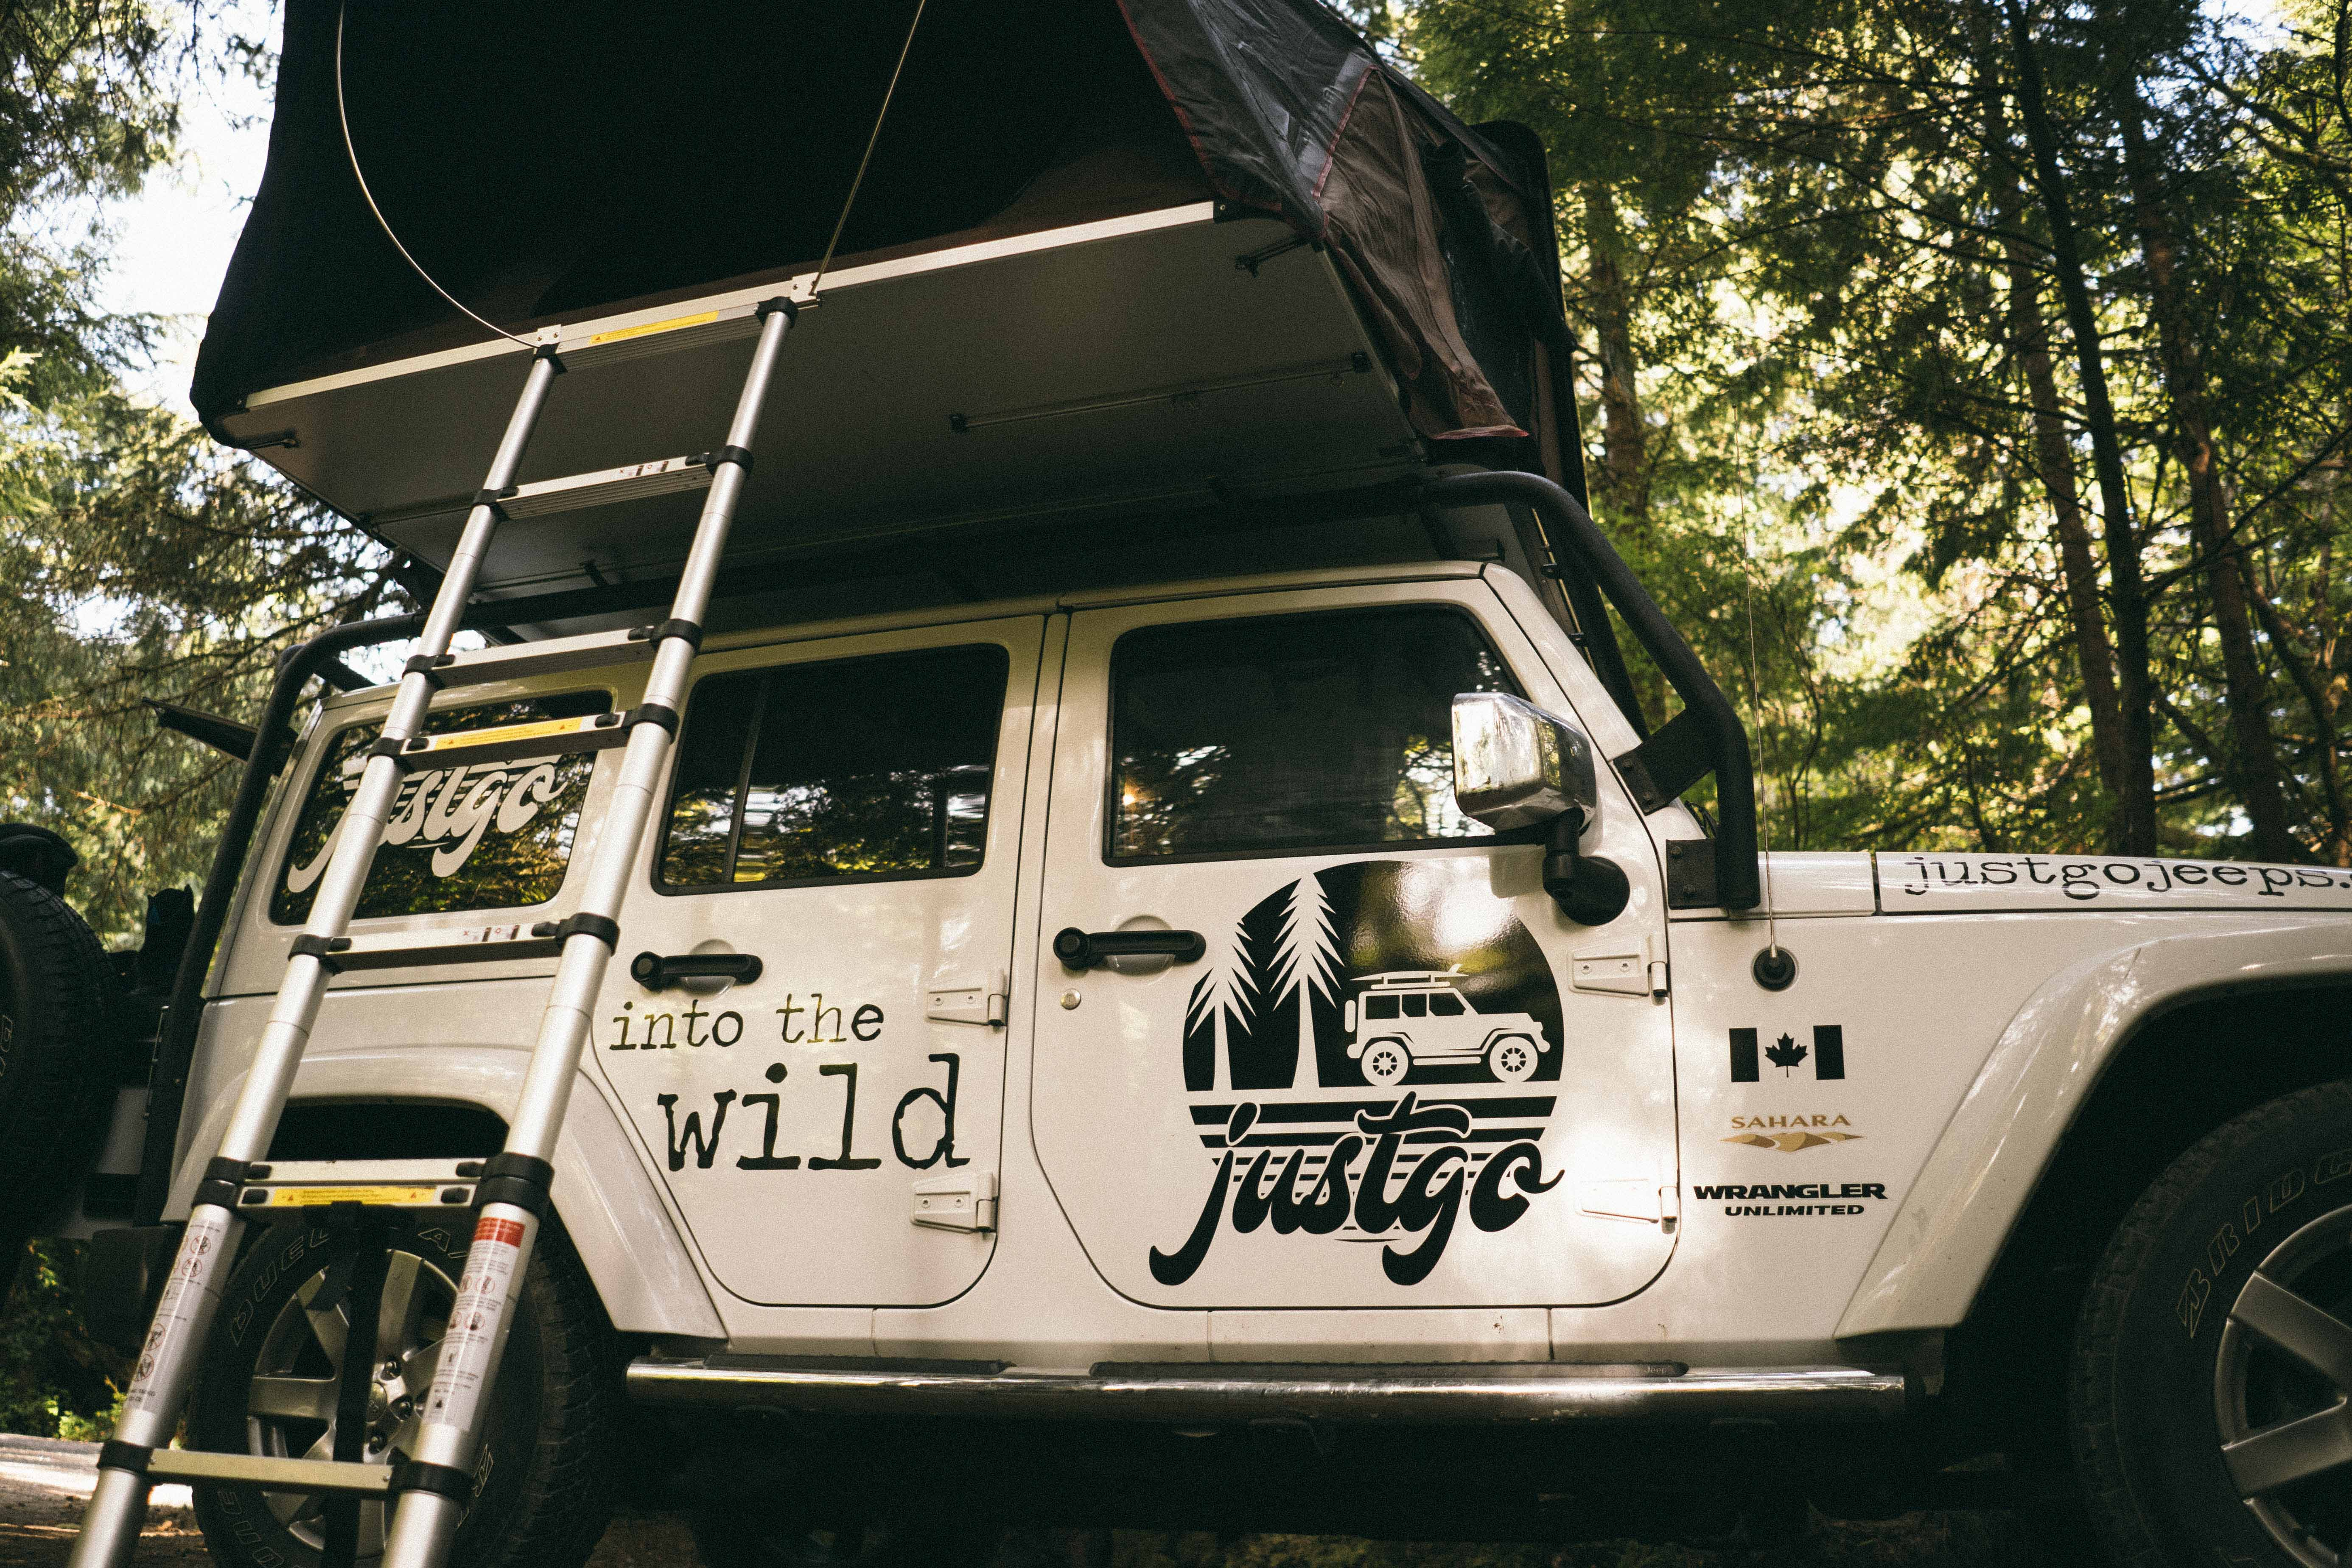 jeep rentals vancouver island british columbia canada camping overlanding